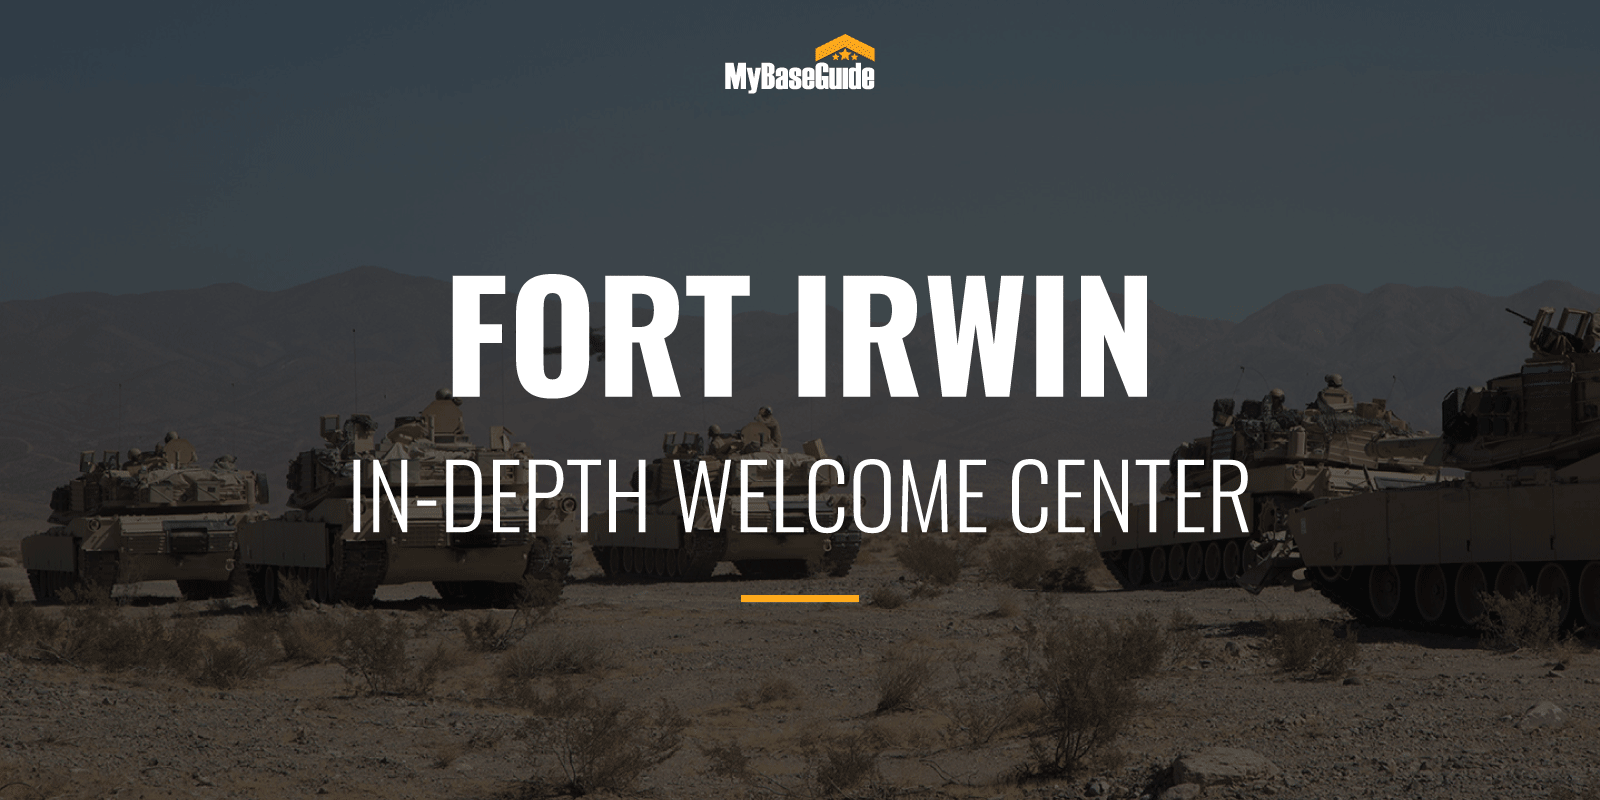 Fort Irwin, CA: In-Depth Welcome Center